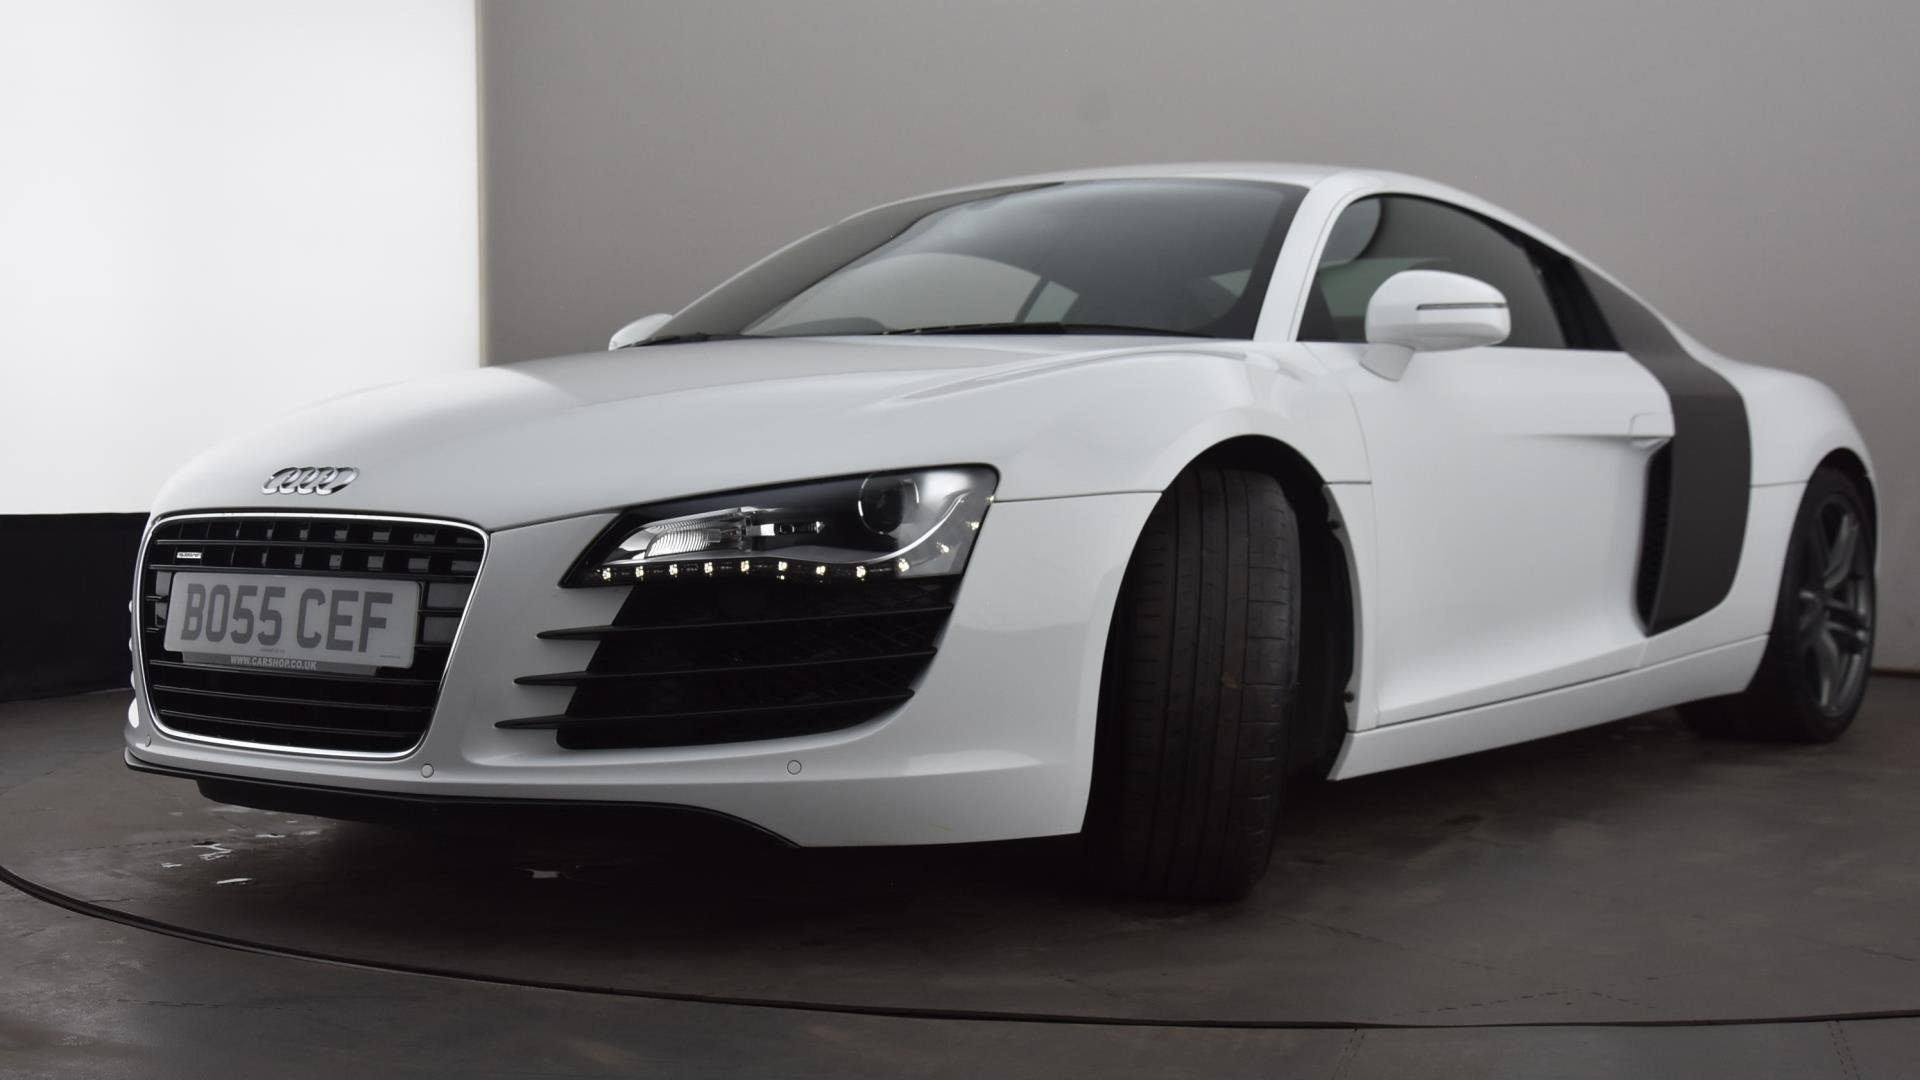 BO55CEF-used-AUDI-R8-COUPE-4-2-FSI-430-Quattro-2dr-Petrol-Manual-WHITE-2012-highlights-HH-L-23.jpg